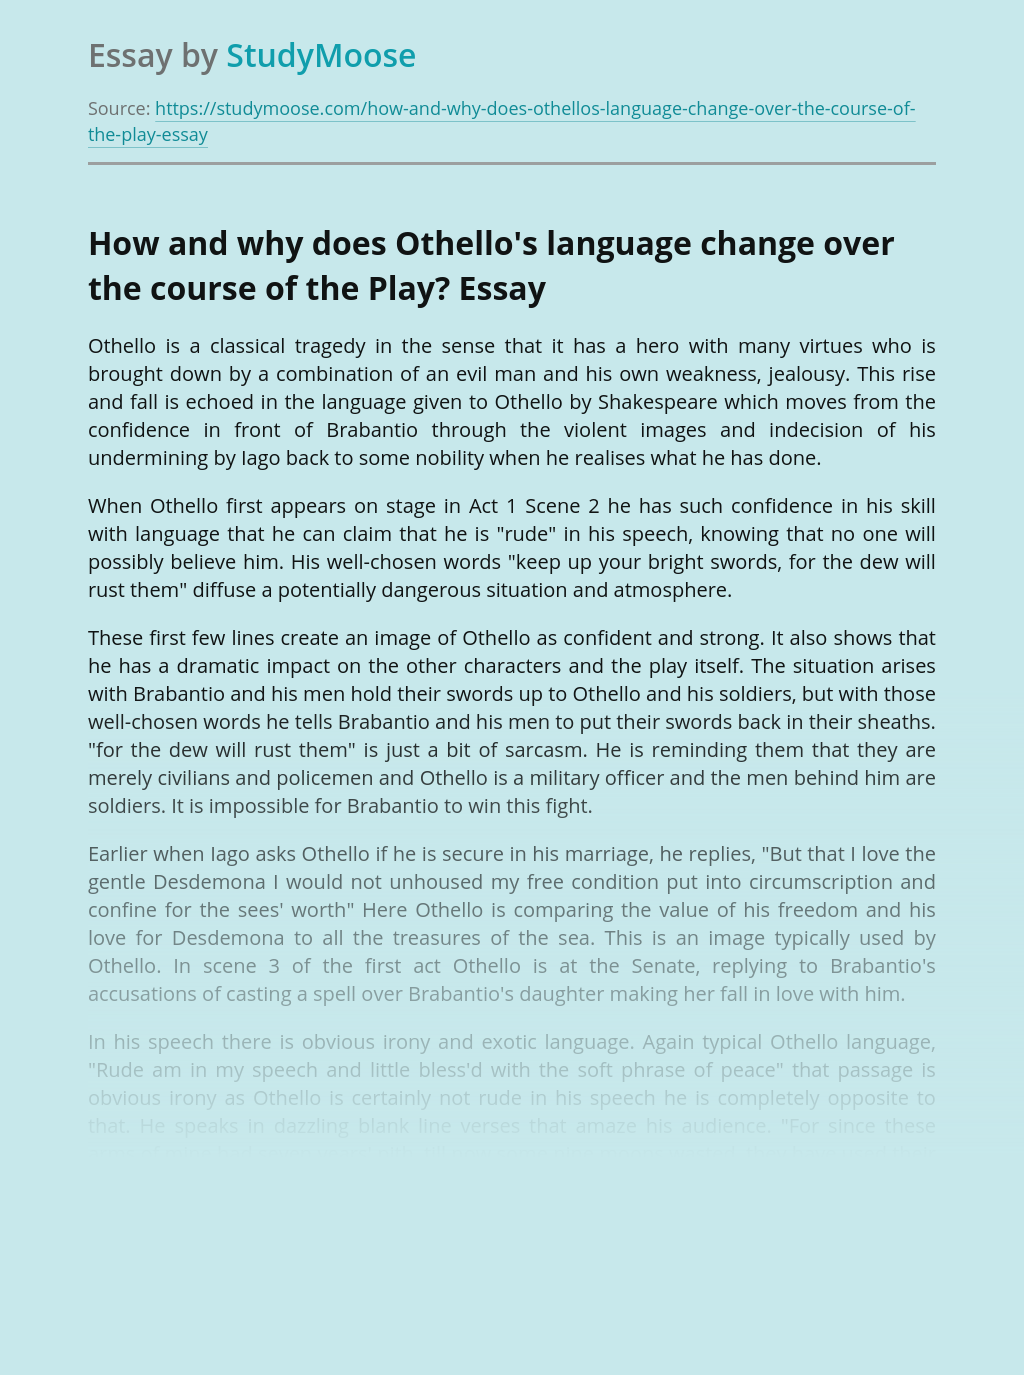 How and why does Othello's language change over the course of the Play?